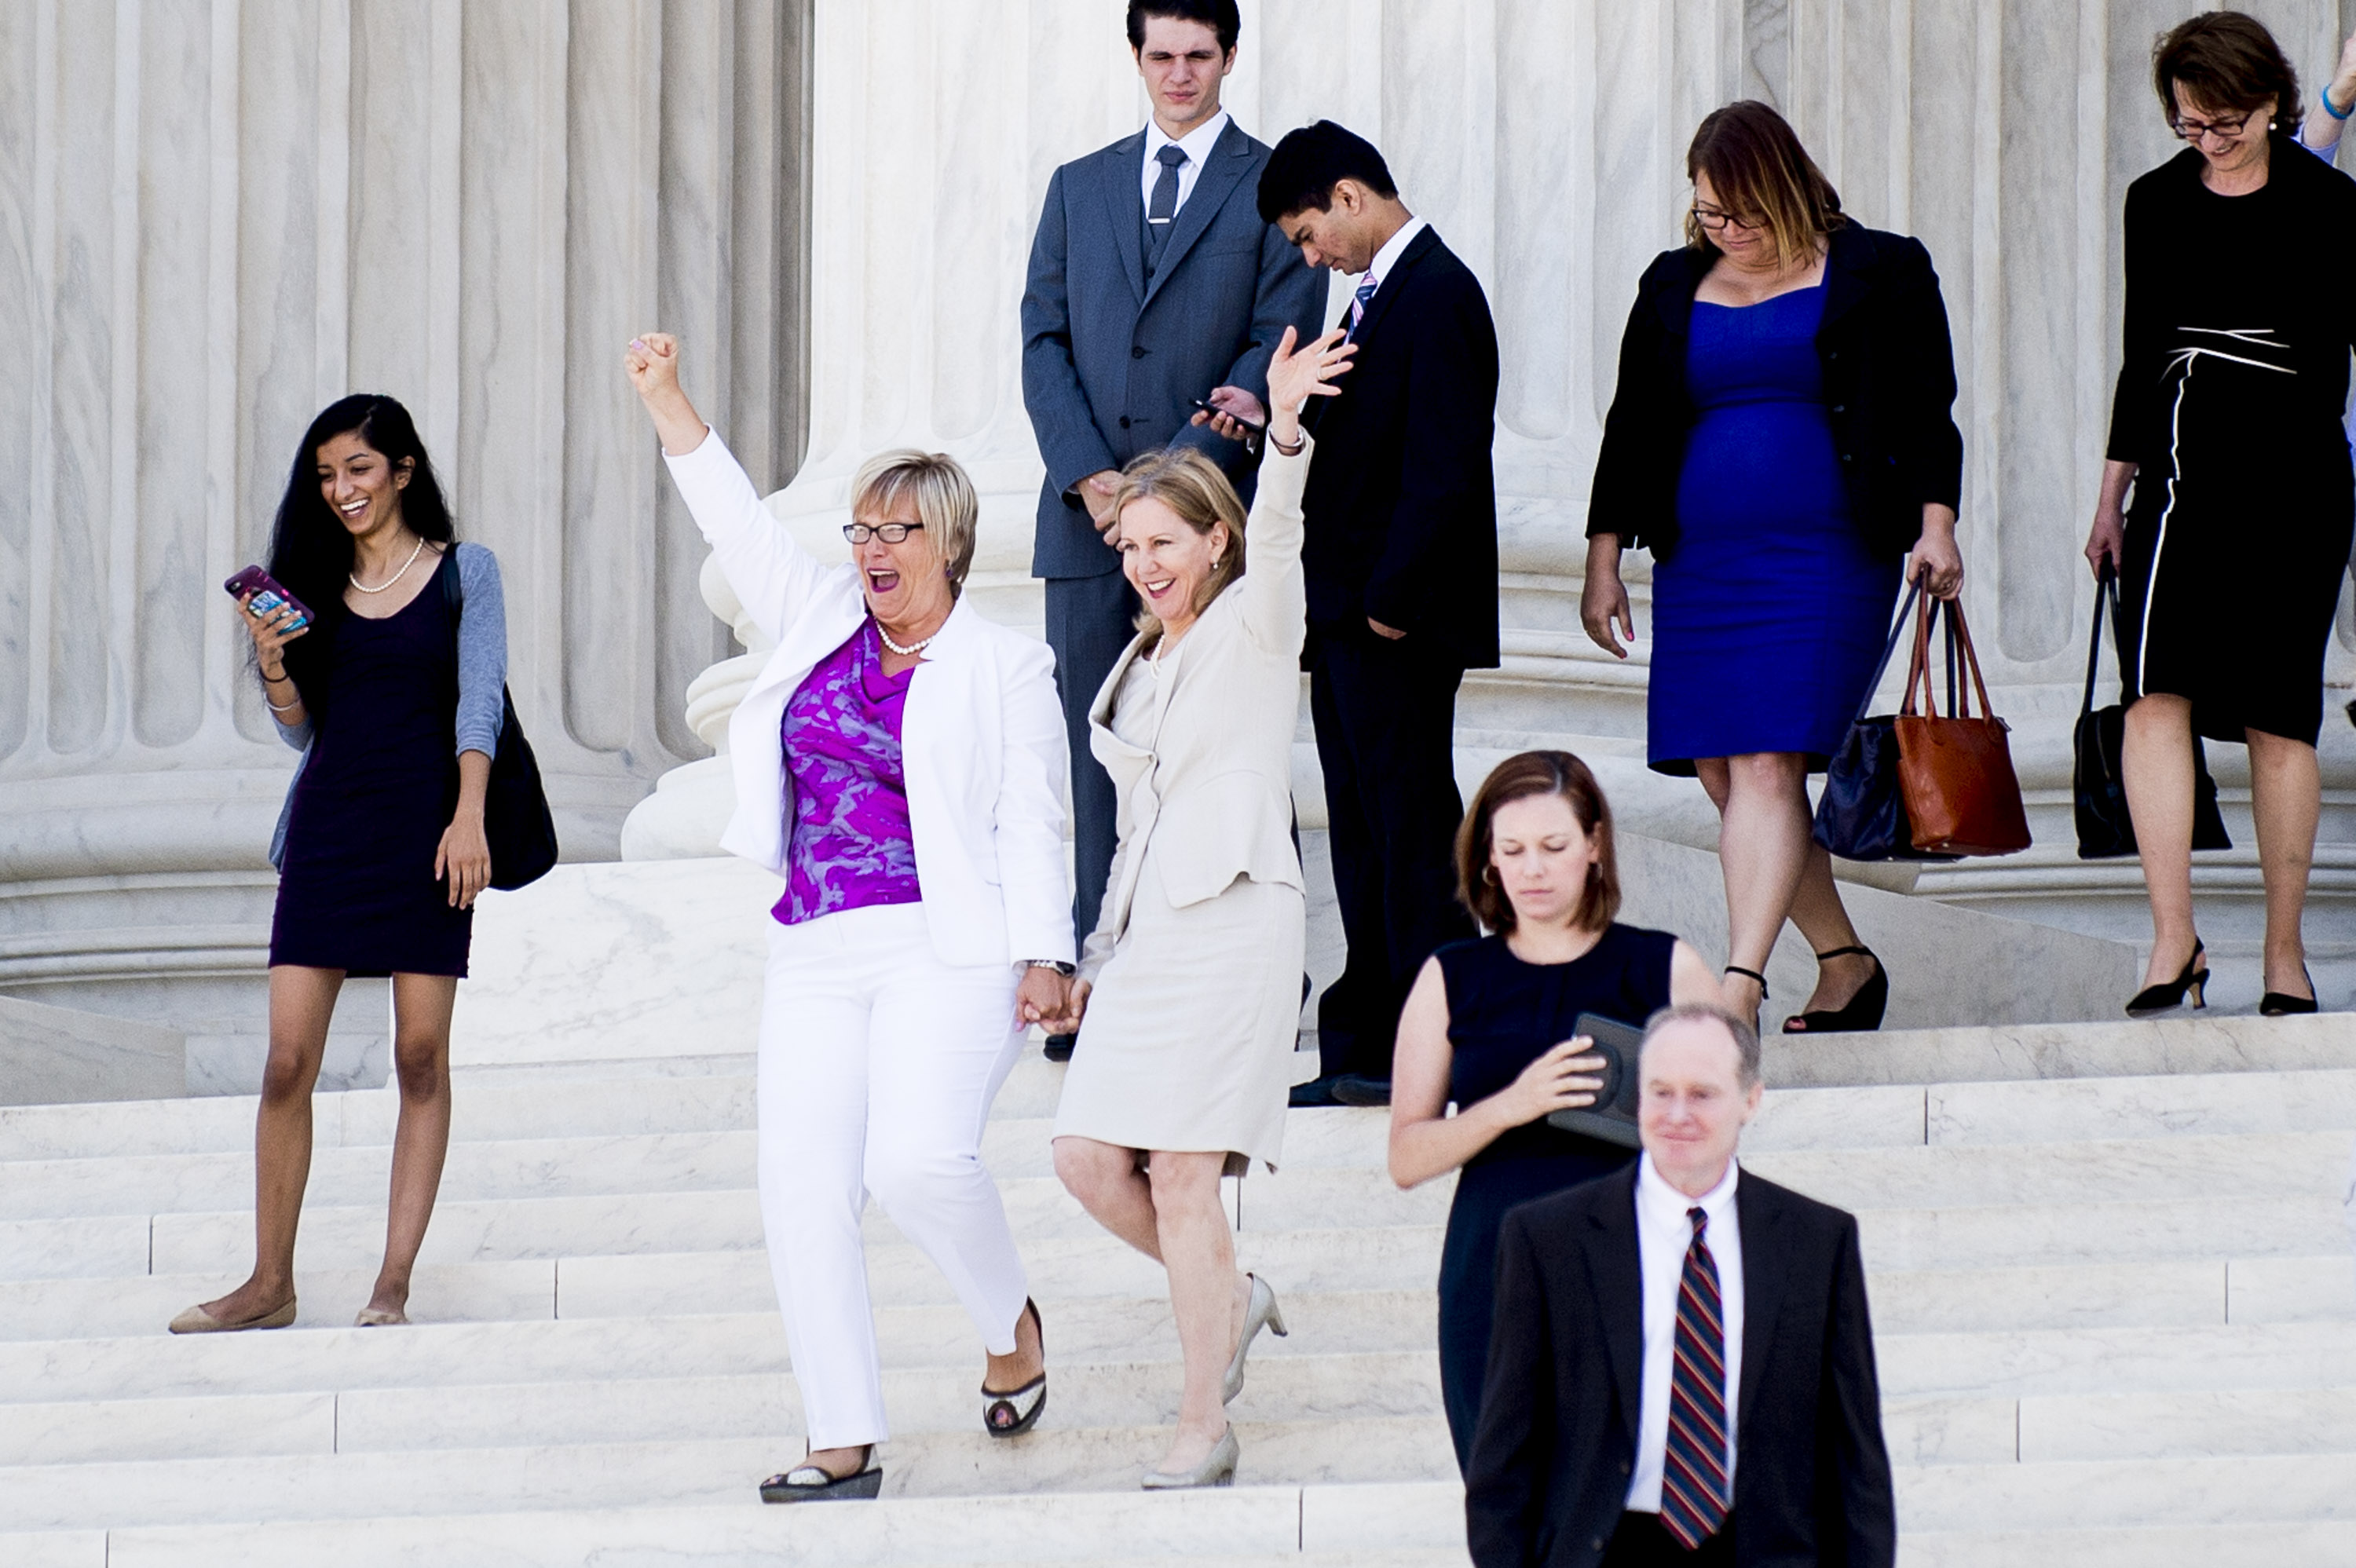 Texas abortion provider Amy Hagstrom-Miller and Nancy Northup, President of The Center for Reproductive Rights wave to supporters as they descend the steps of the United States Supreme Court in Washington, D.C., on June 27, 2016.